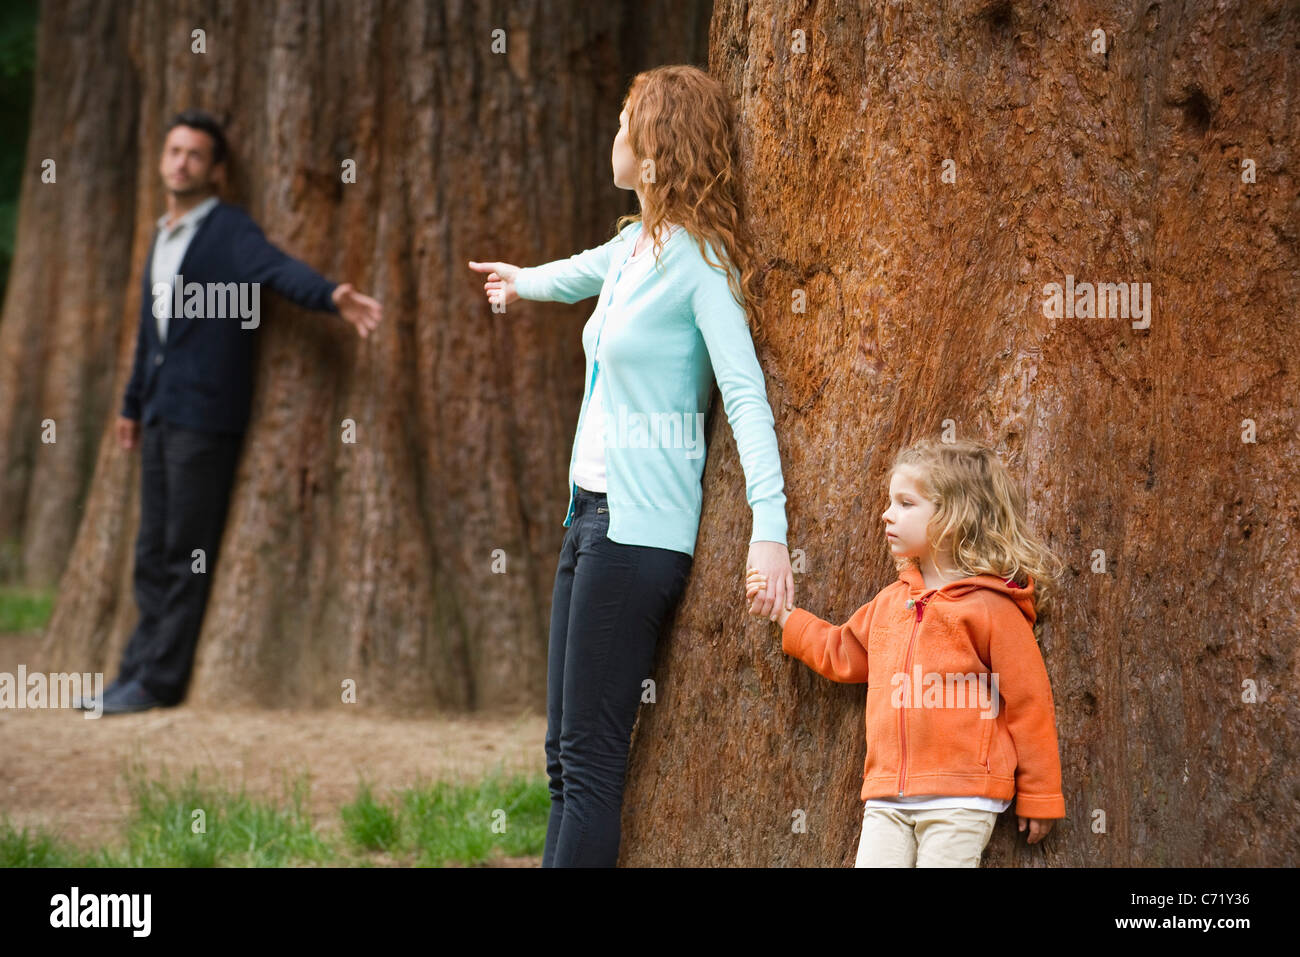 Parents leaning against separate trees, reaching out for each other - Stock Image